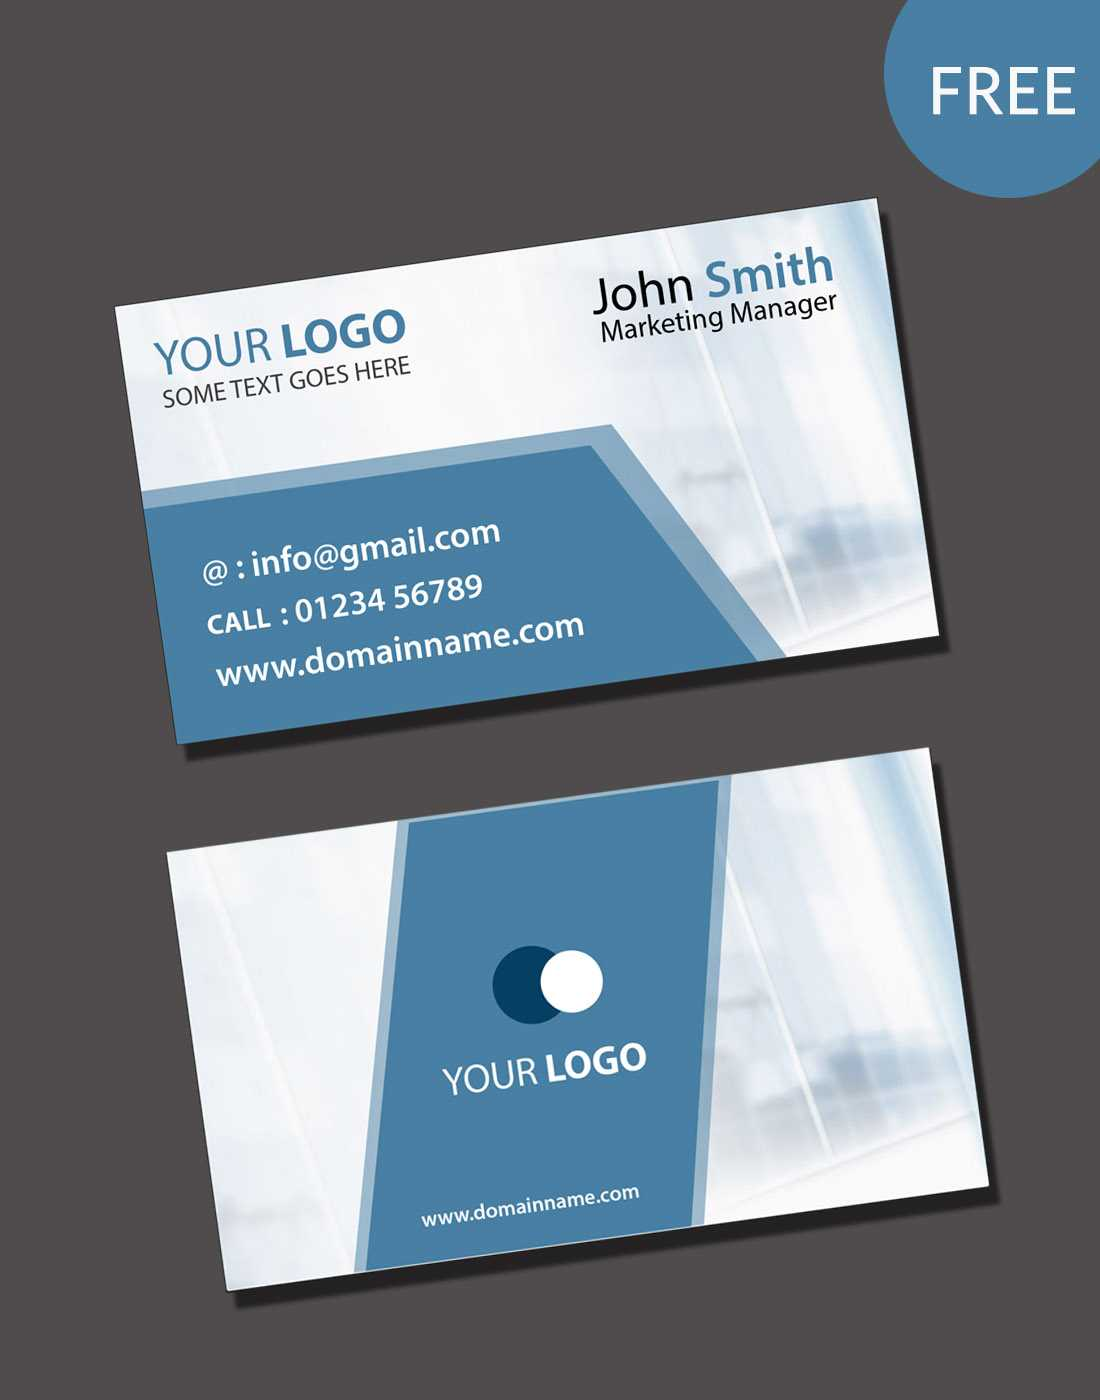 Visiting Card Psd Template Free Download Pertaining To Visiting Card Psd Template Free Download